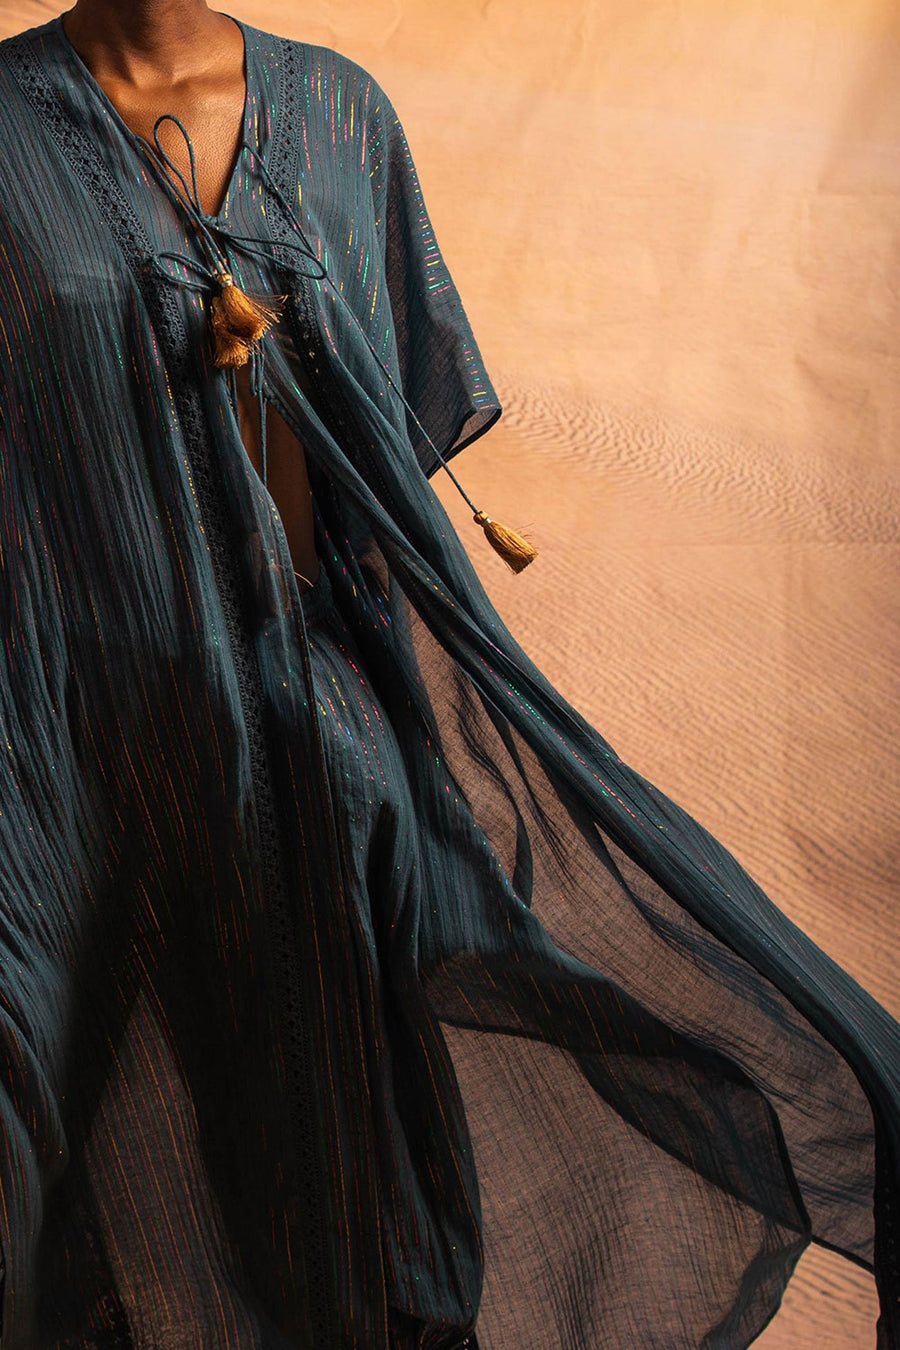 This is a detail photo of a blue cotton gauze coat with metallic stripe detailing. It is worn closed here with ties in the same fabric and gold tassels on the end.